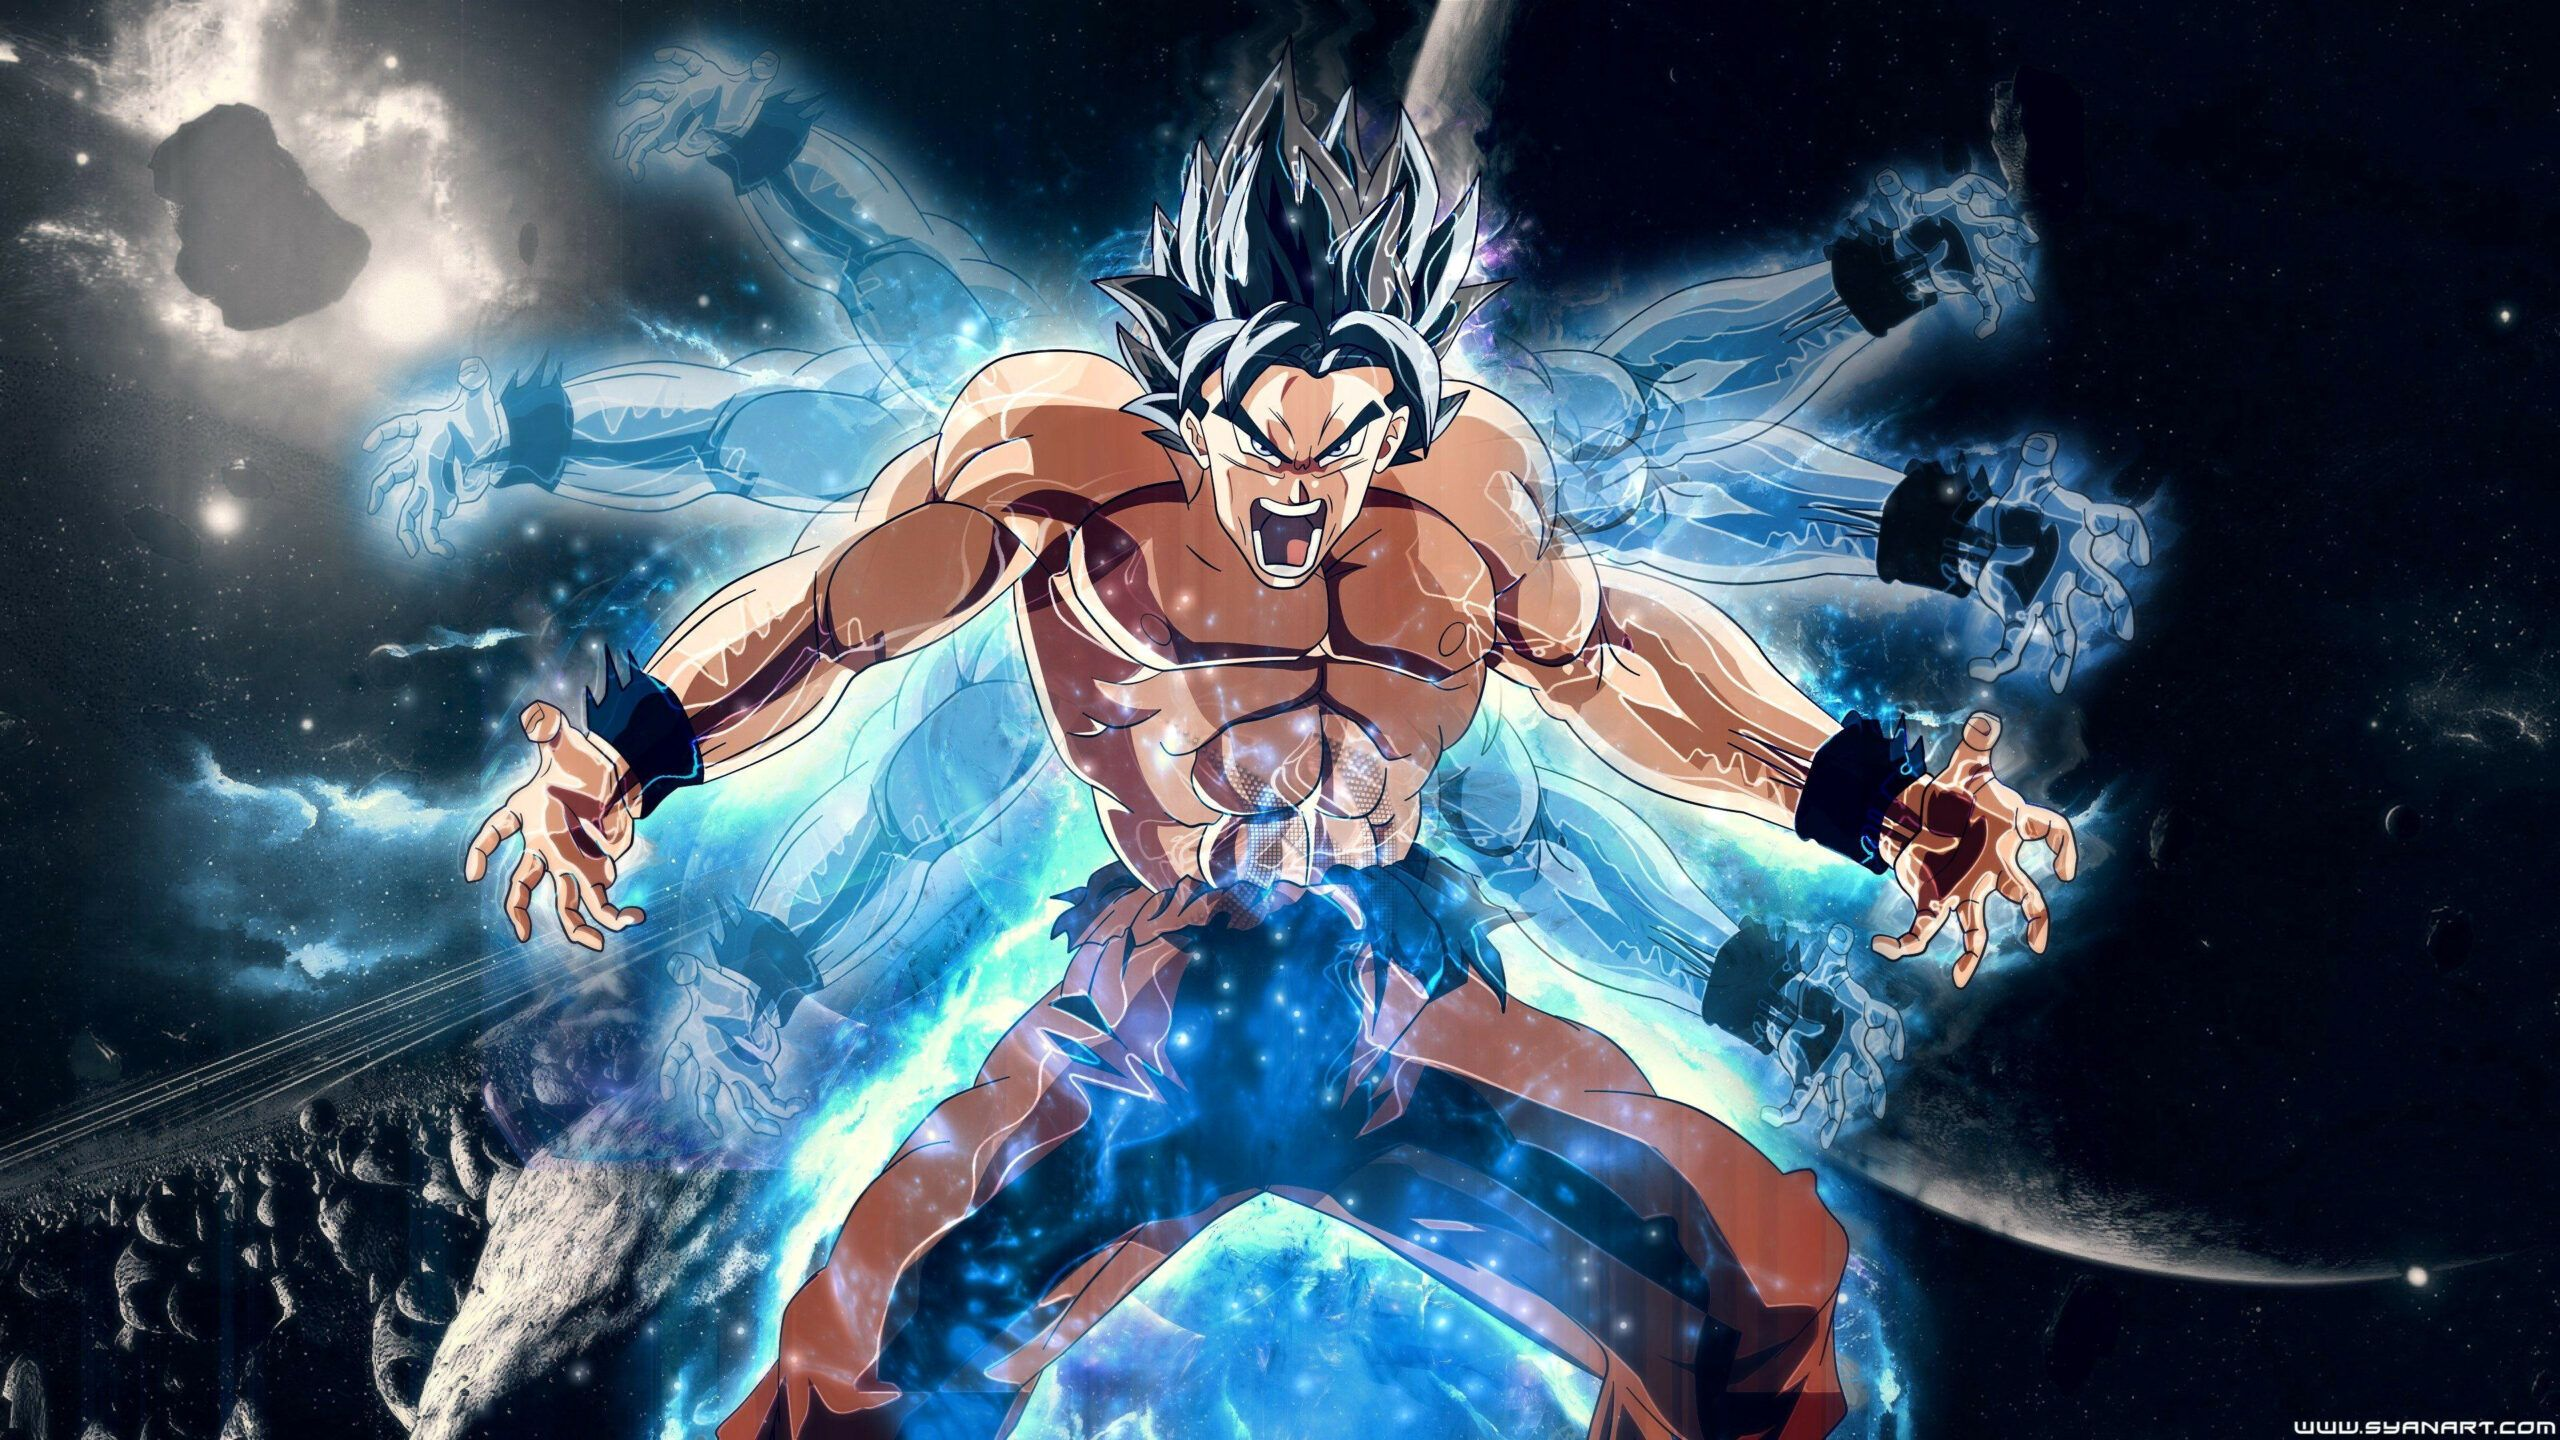 The only app that gives you the true ultra instinct live wallpaper!!! Fresh Dragon Ball Super Live Wallpaper For Android Wall ...